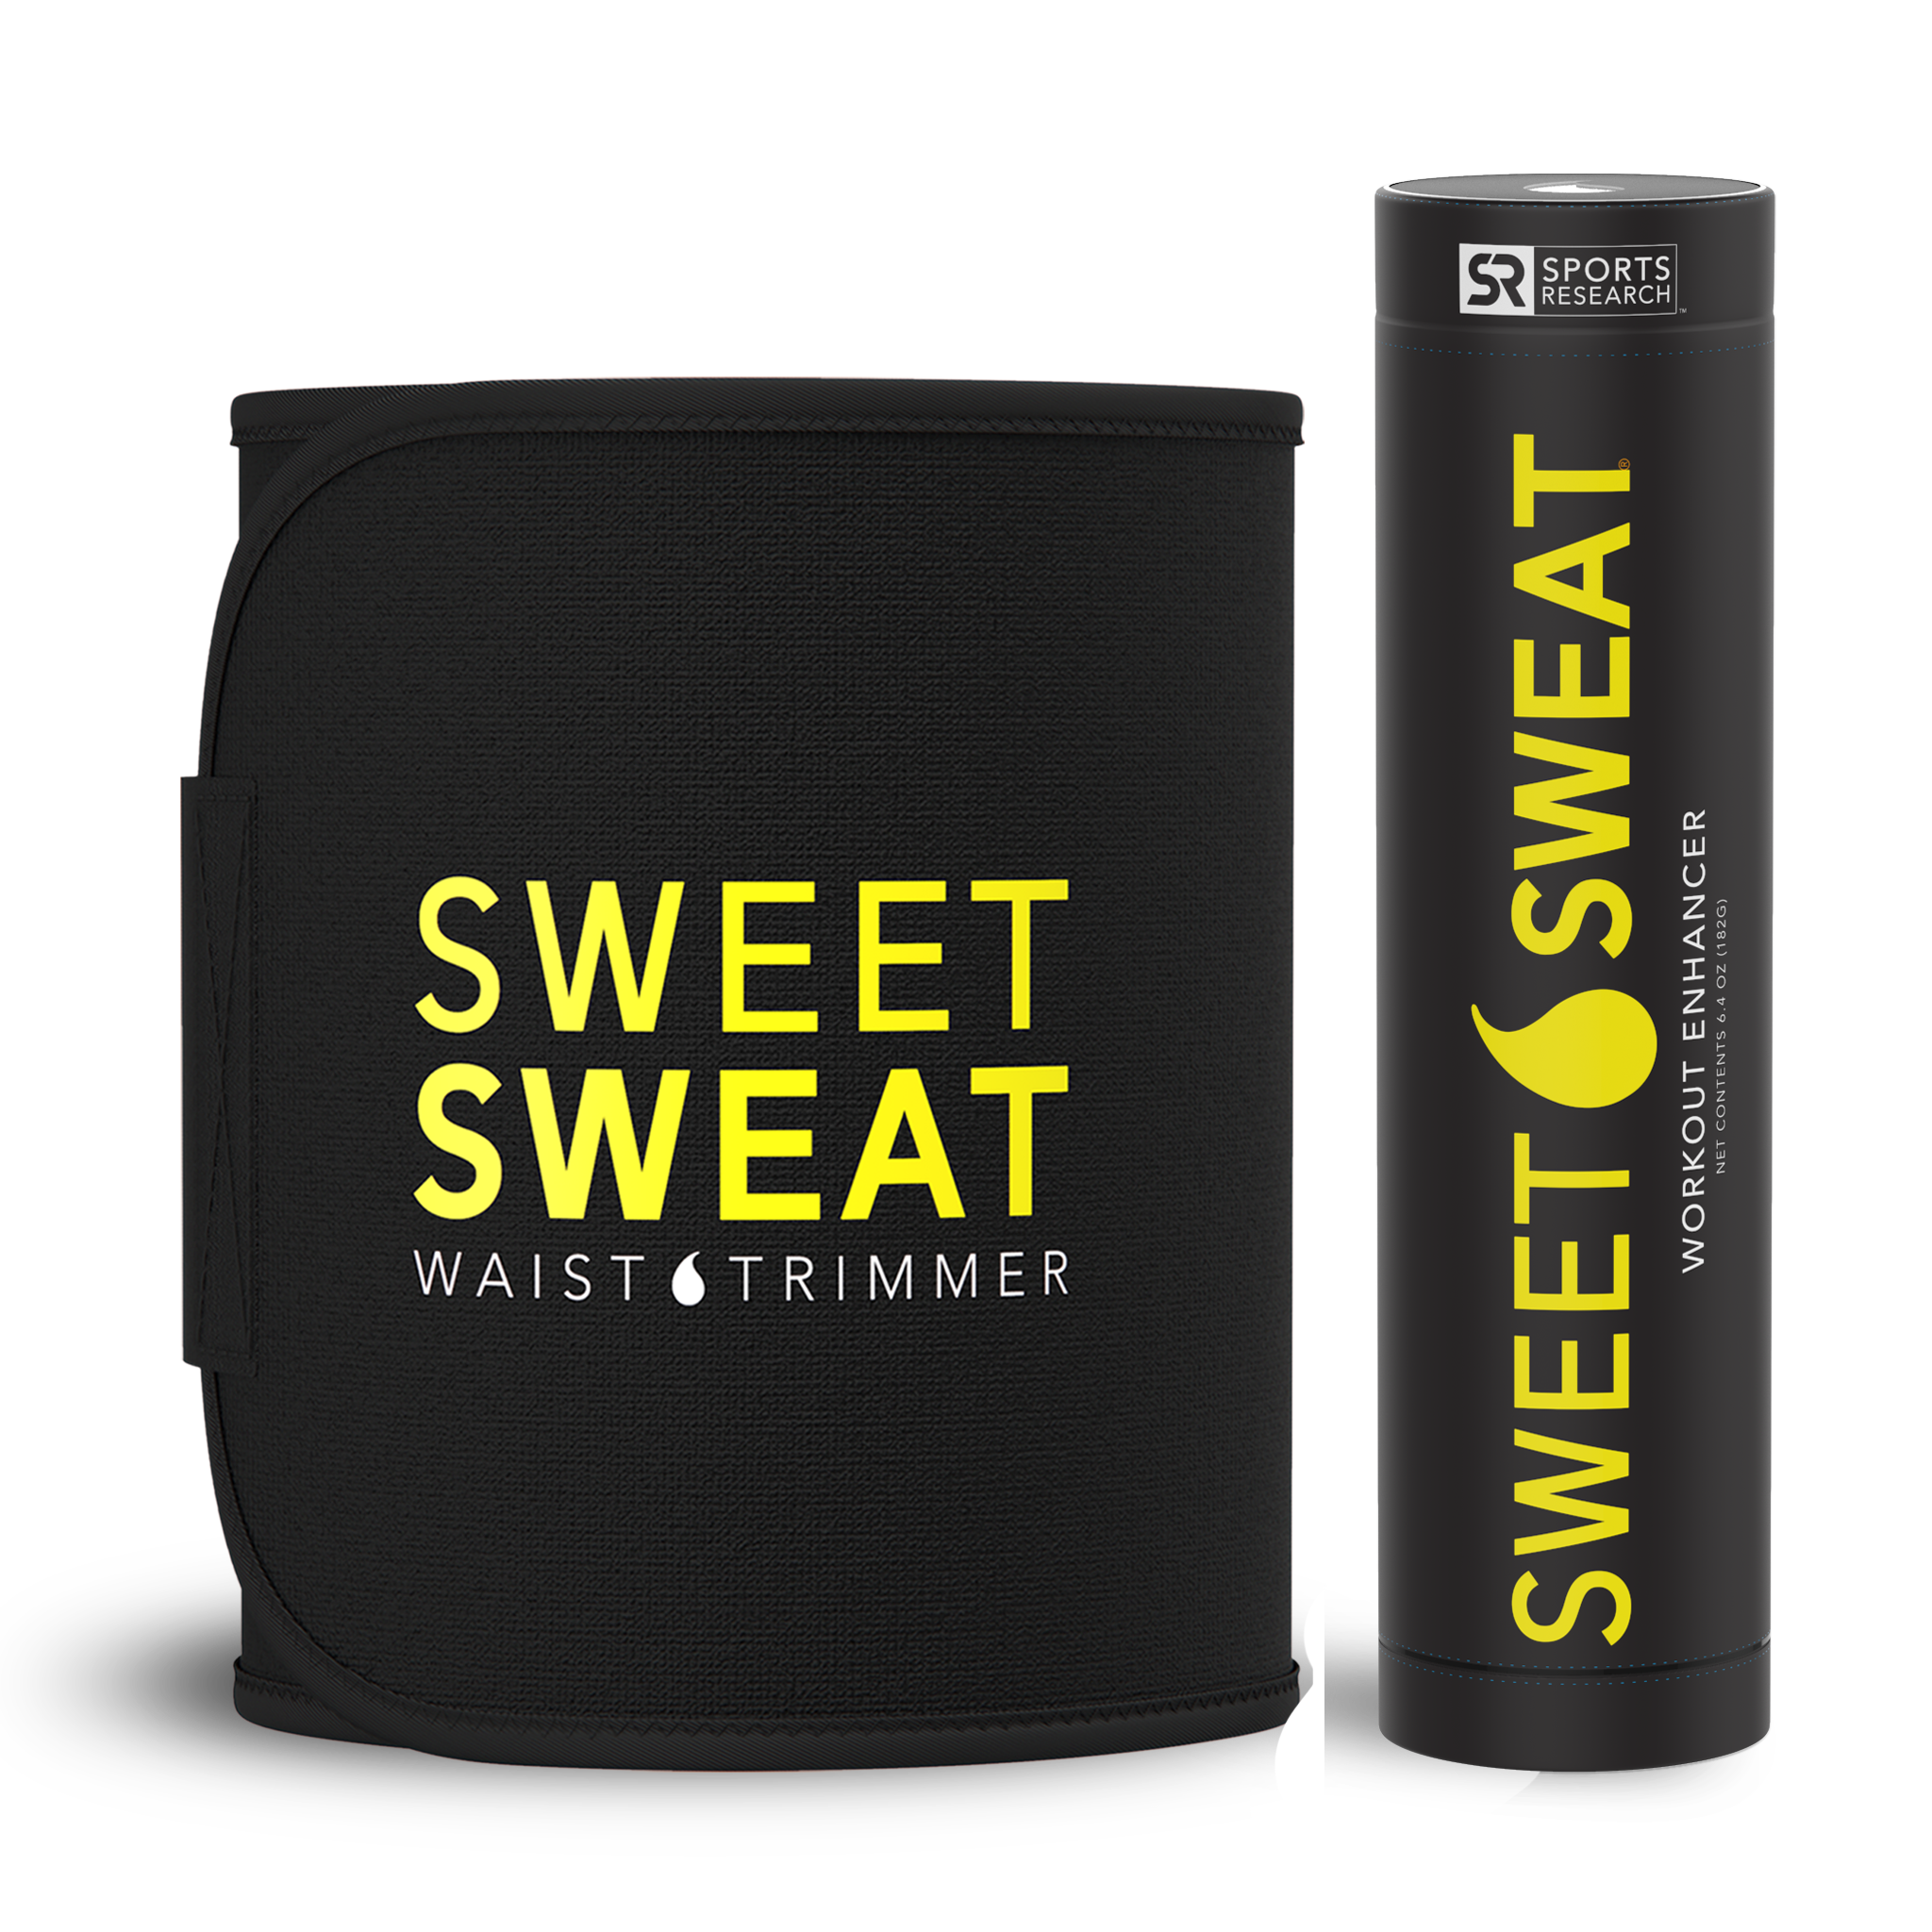 Комплект мазь Sweet Sweat Stick Original (182 гр.) и термопояс Sweet Sweat на талию